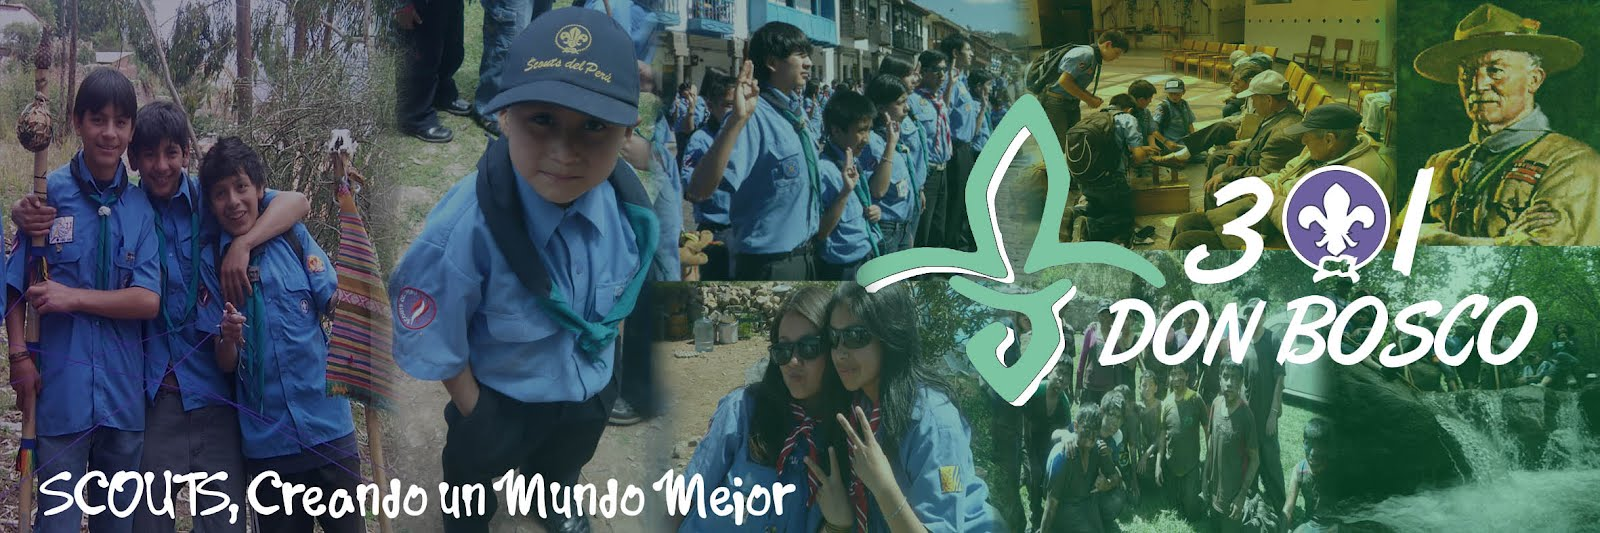 Scout Don Bosco Cusco 301